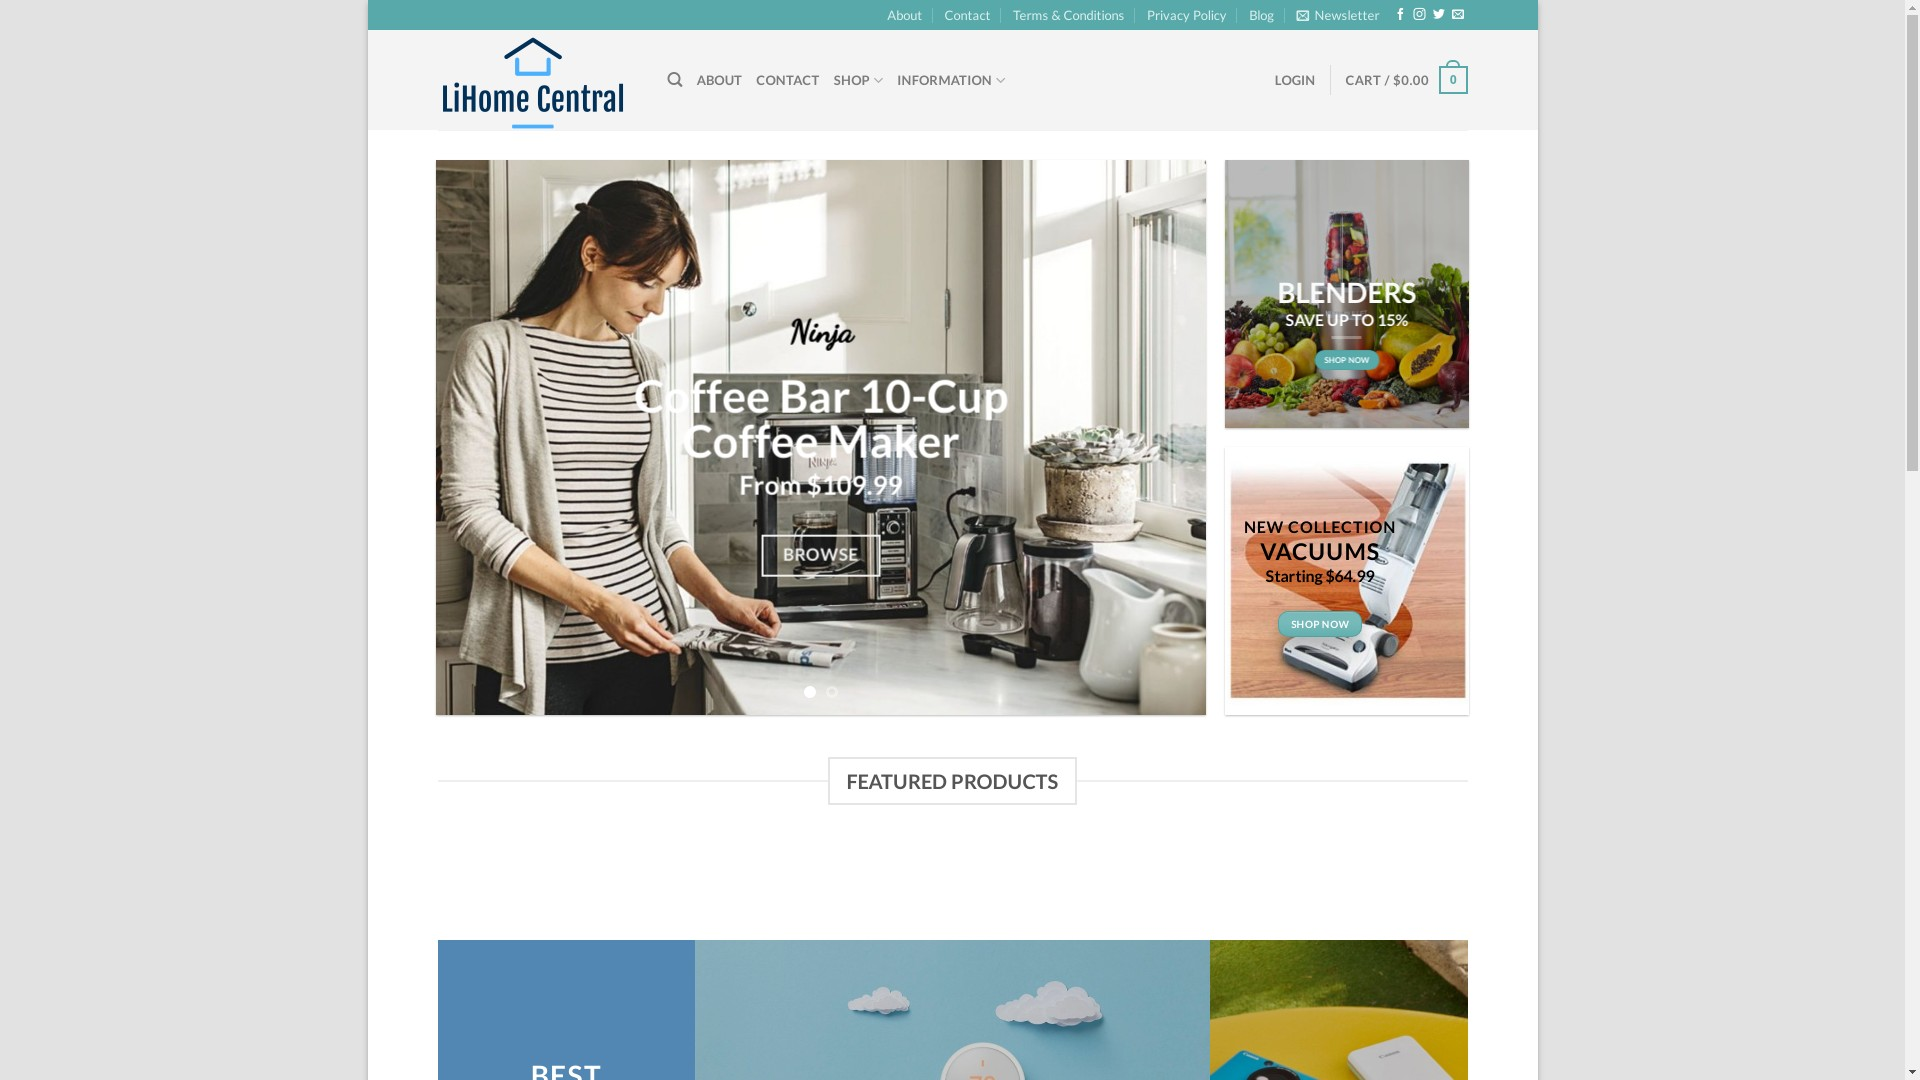 Is Lihome Central a Scam? Review of the Online Store